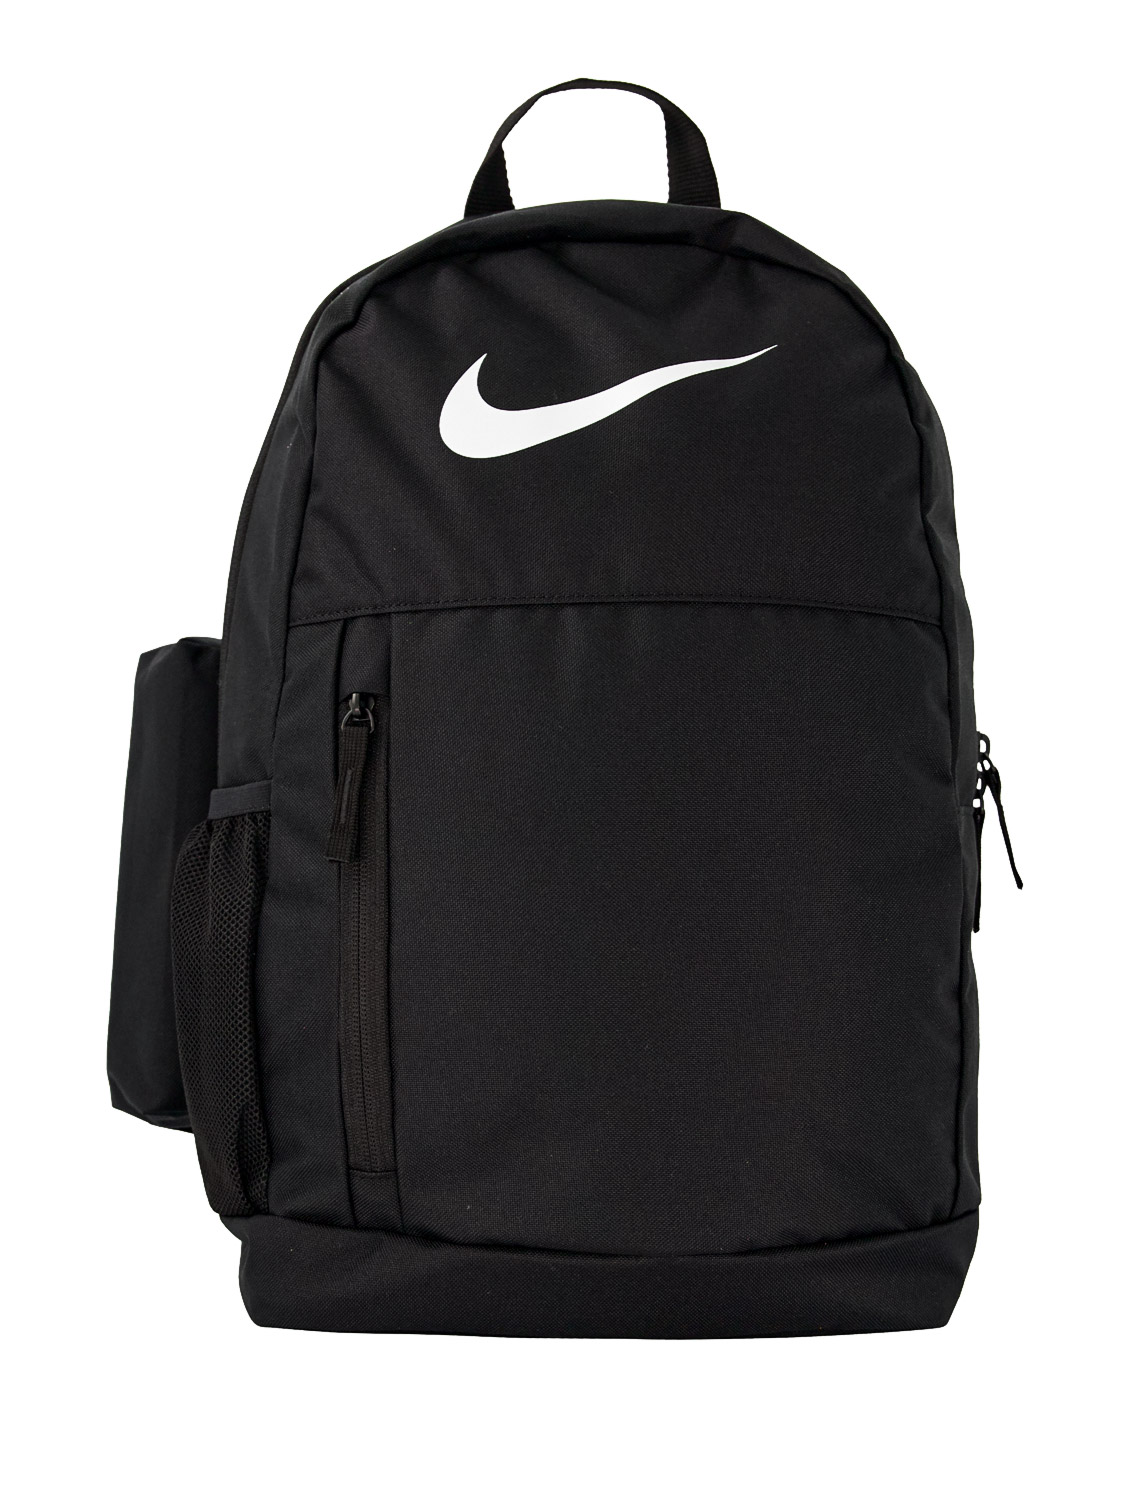 Nike Kids Backpack Elemental For For Boys And For Girls In Black